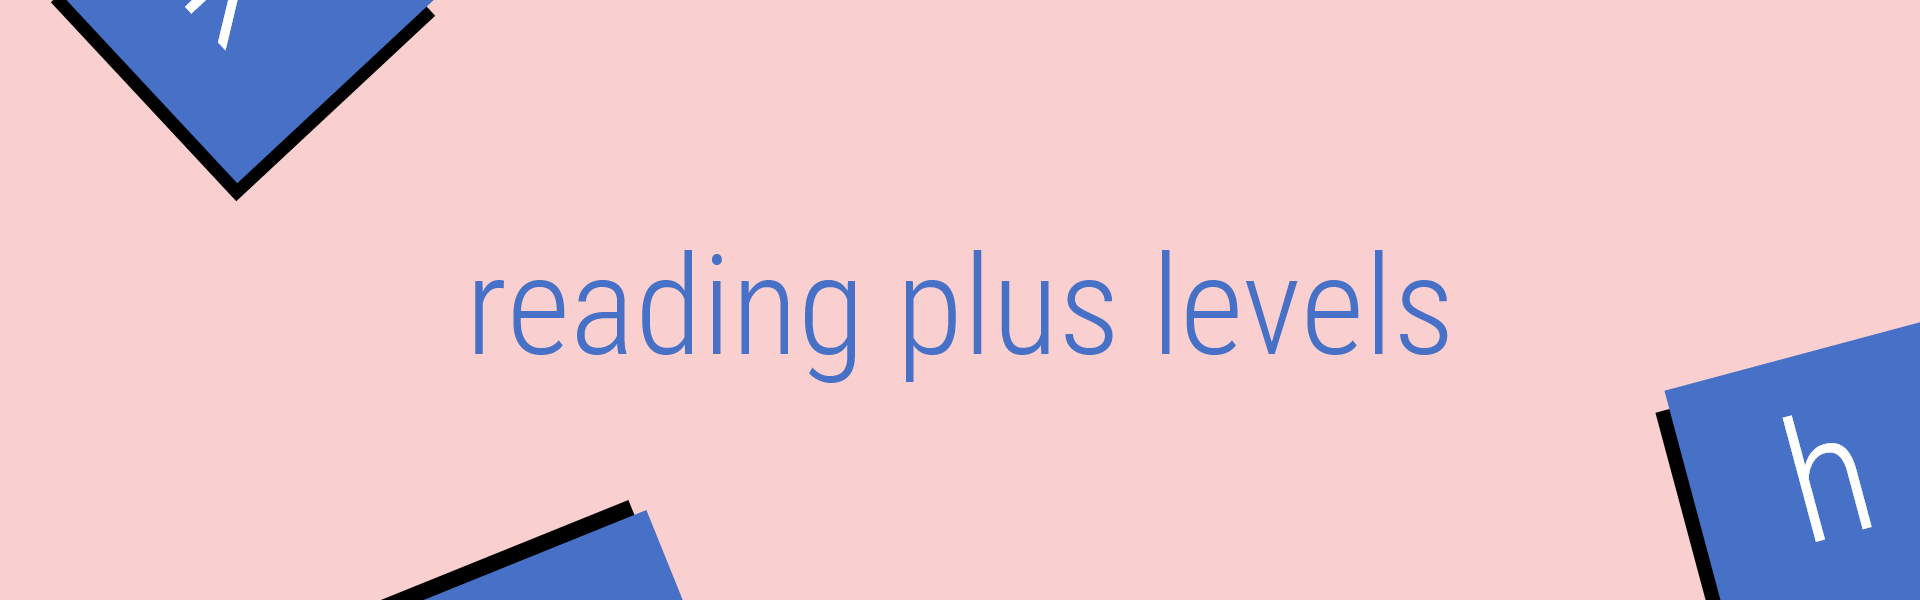 reading plus levels